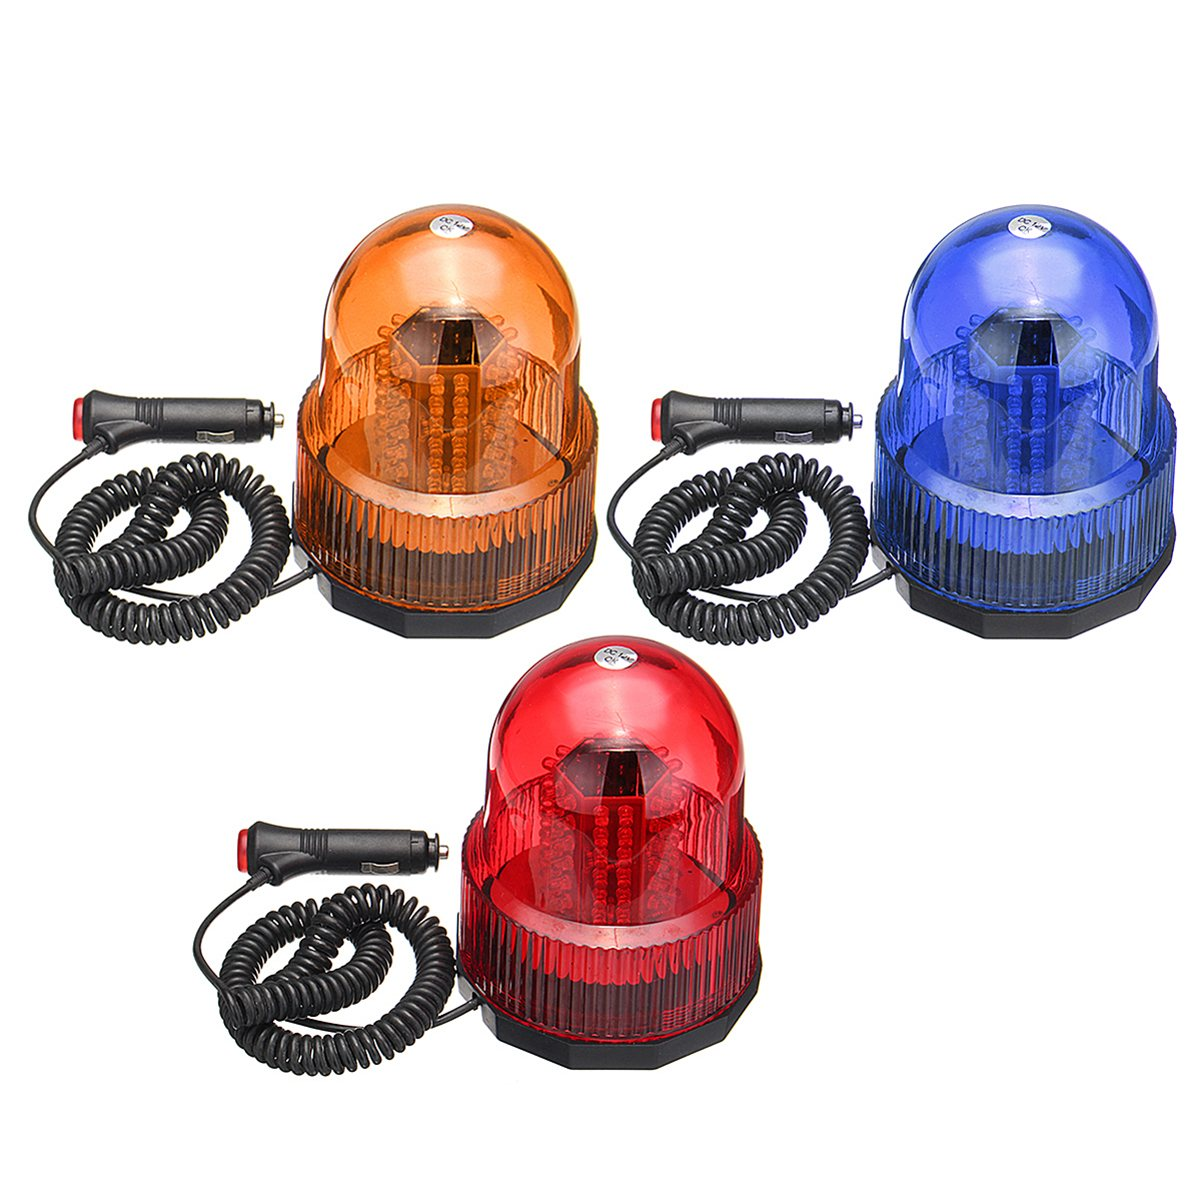 NEW 12V Car Magnetic Beacon Rotating Revolving Strobe Flash Warning Alarm LED Light Roadway Safety